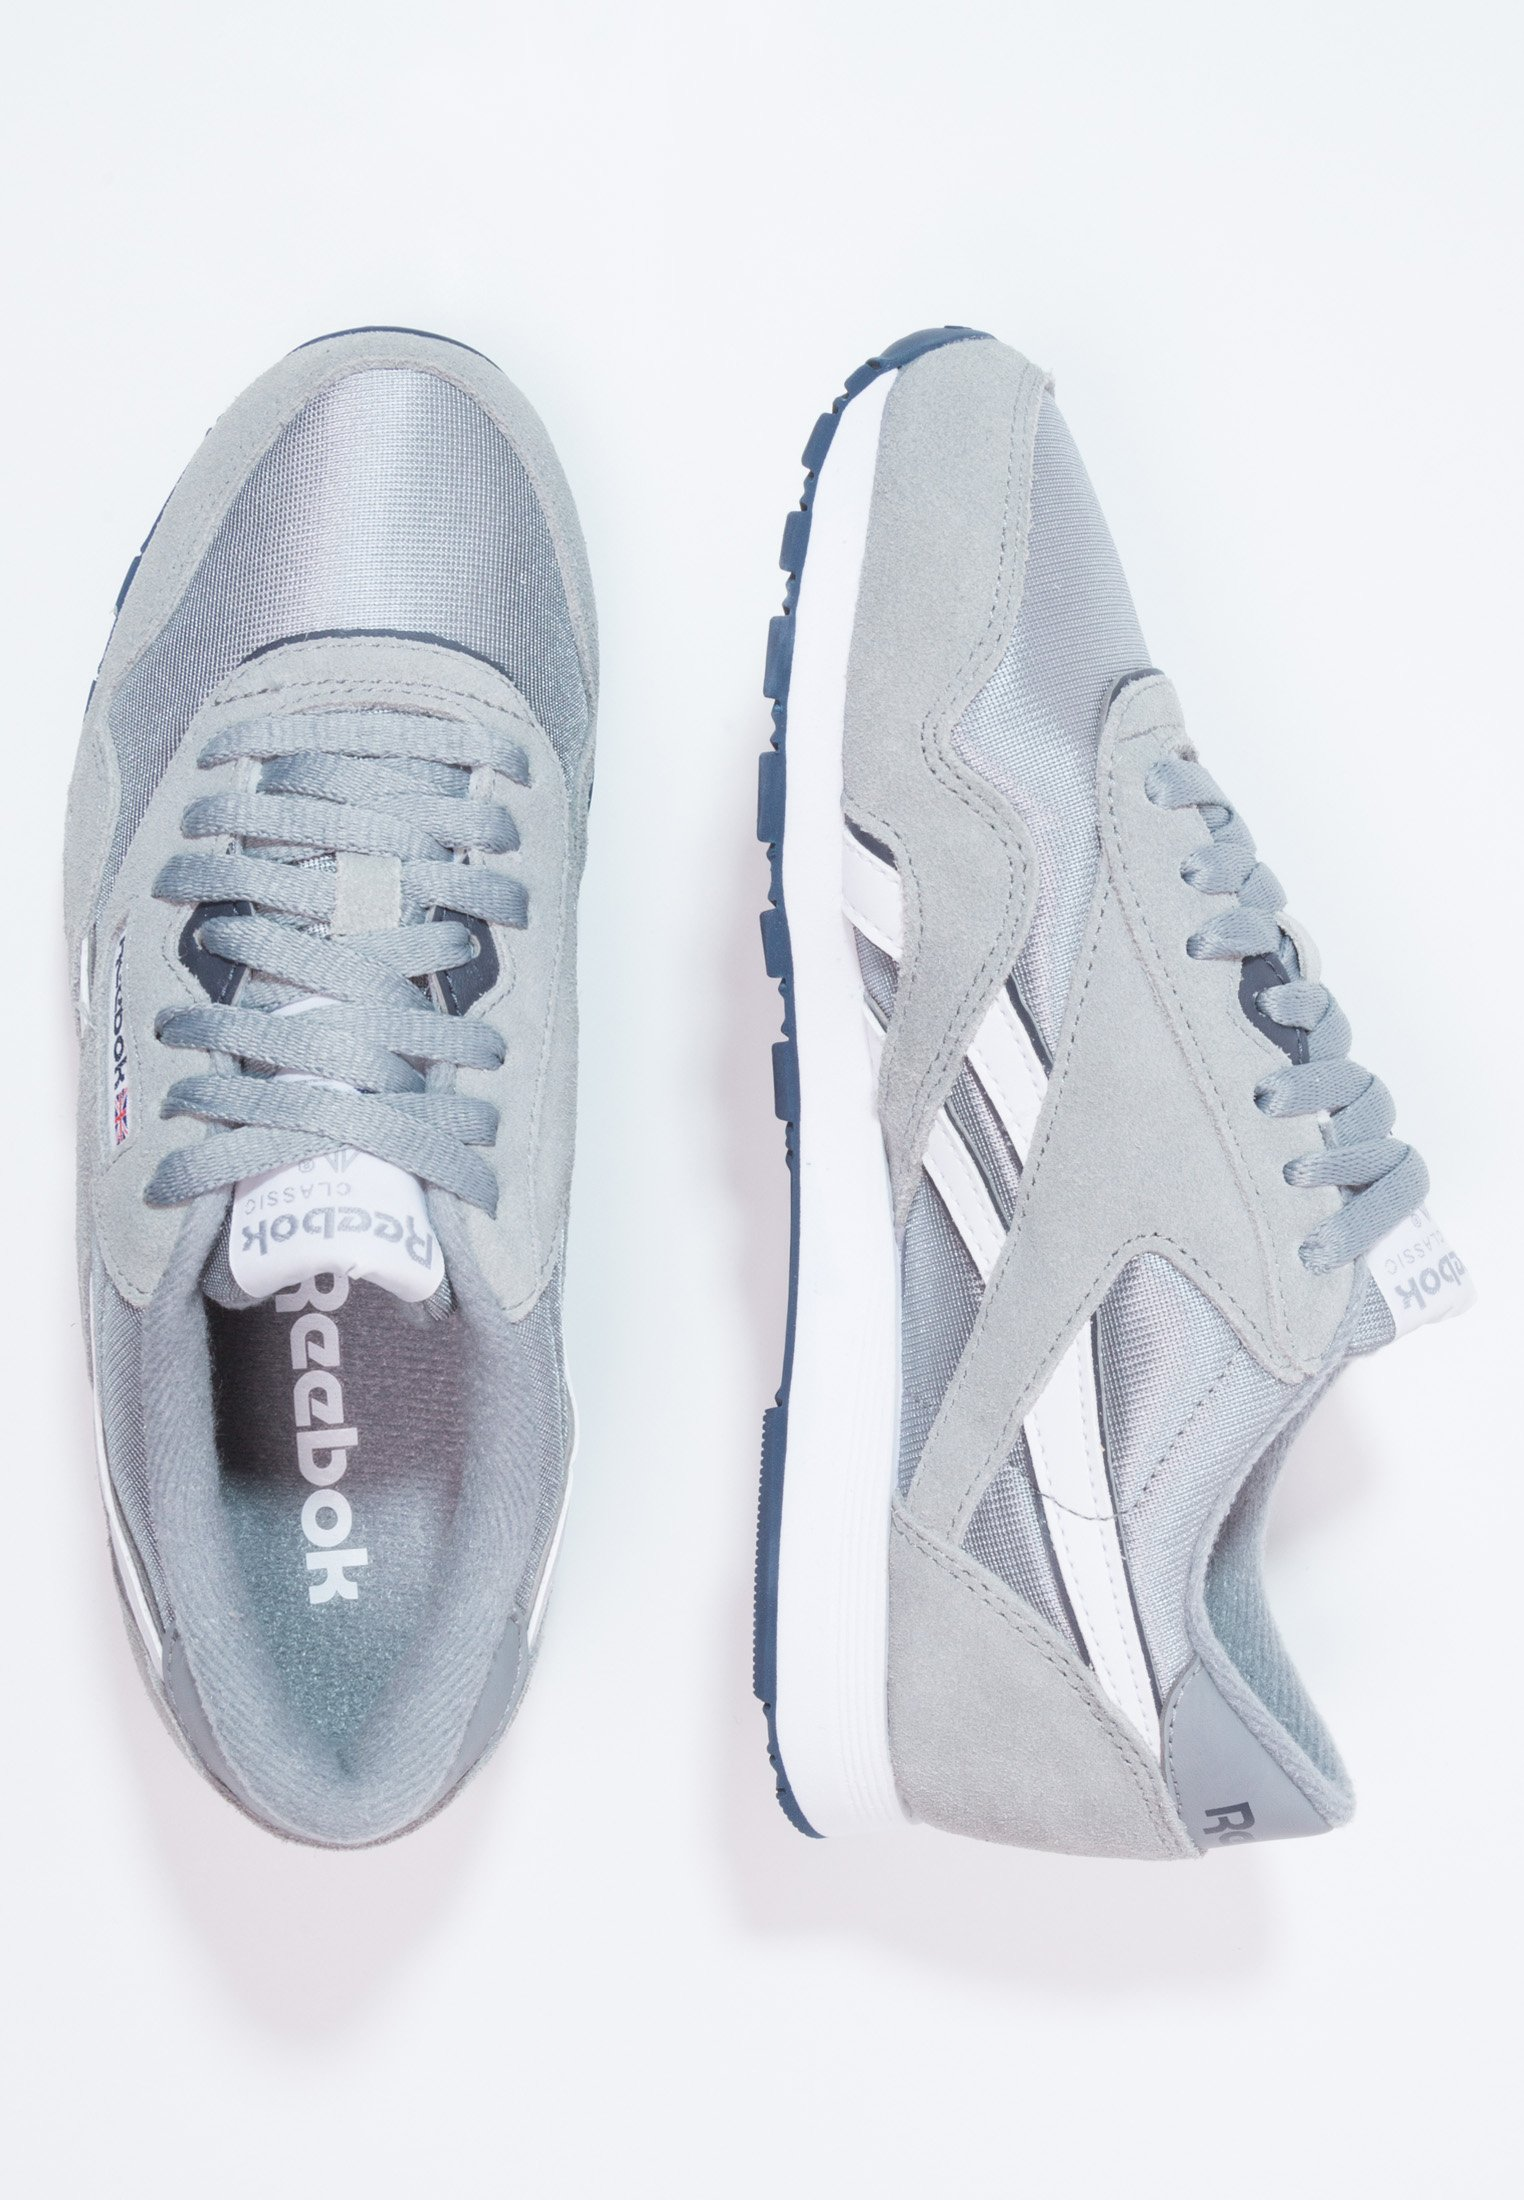 reebok classic leather homme zalando jeans